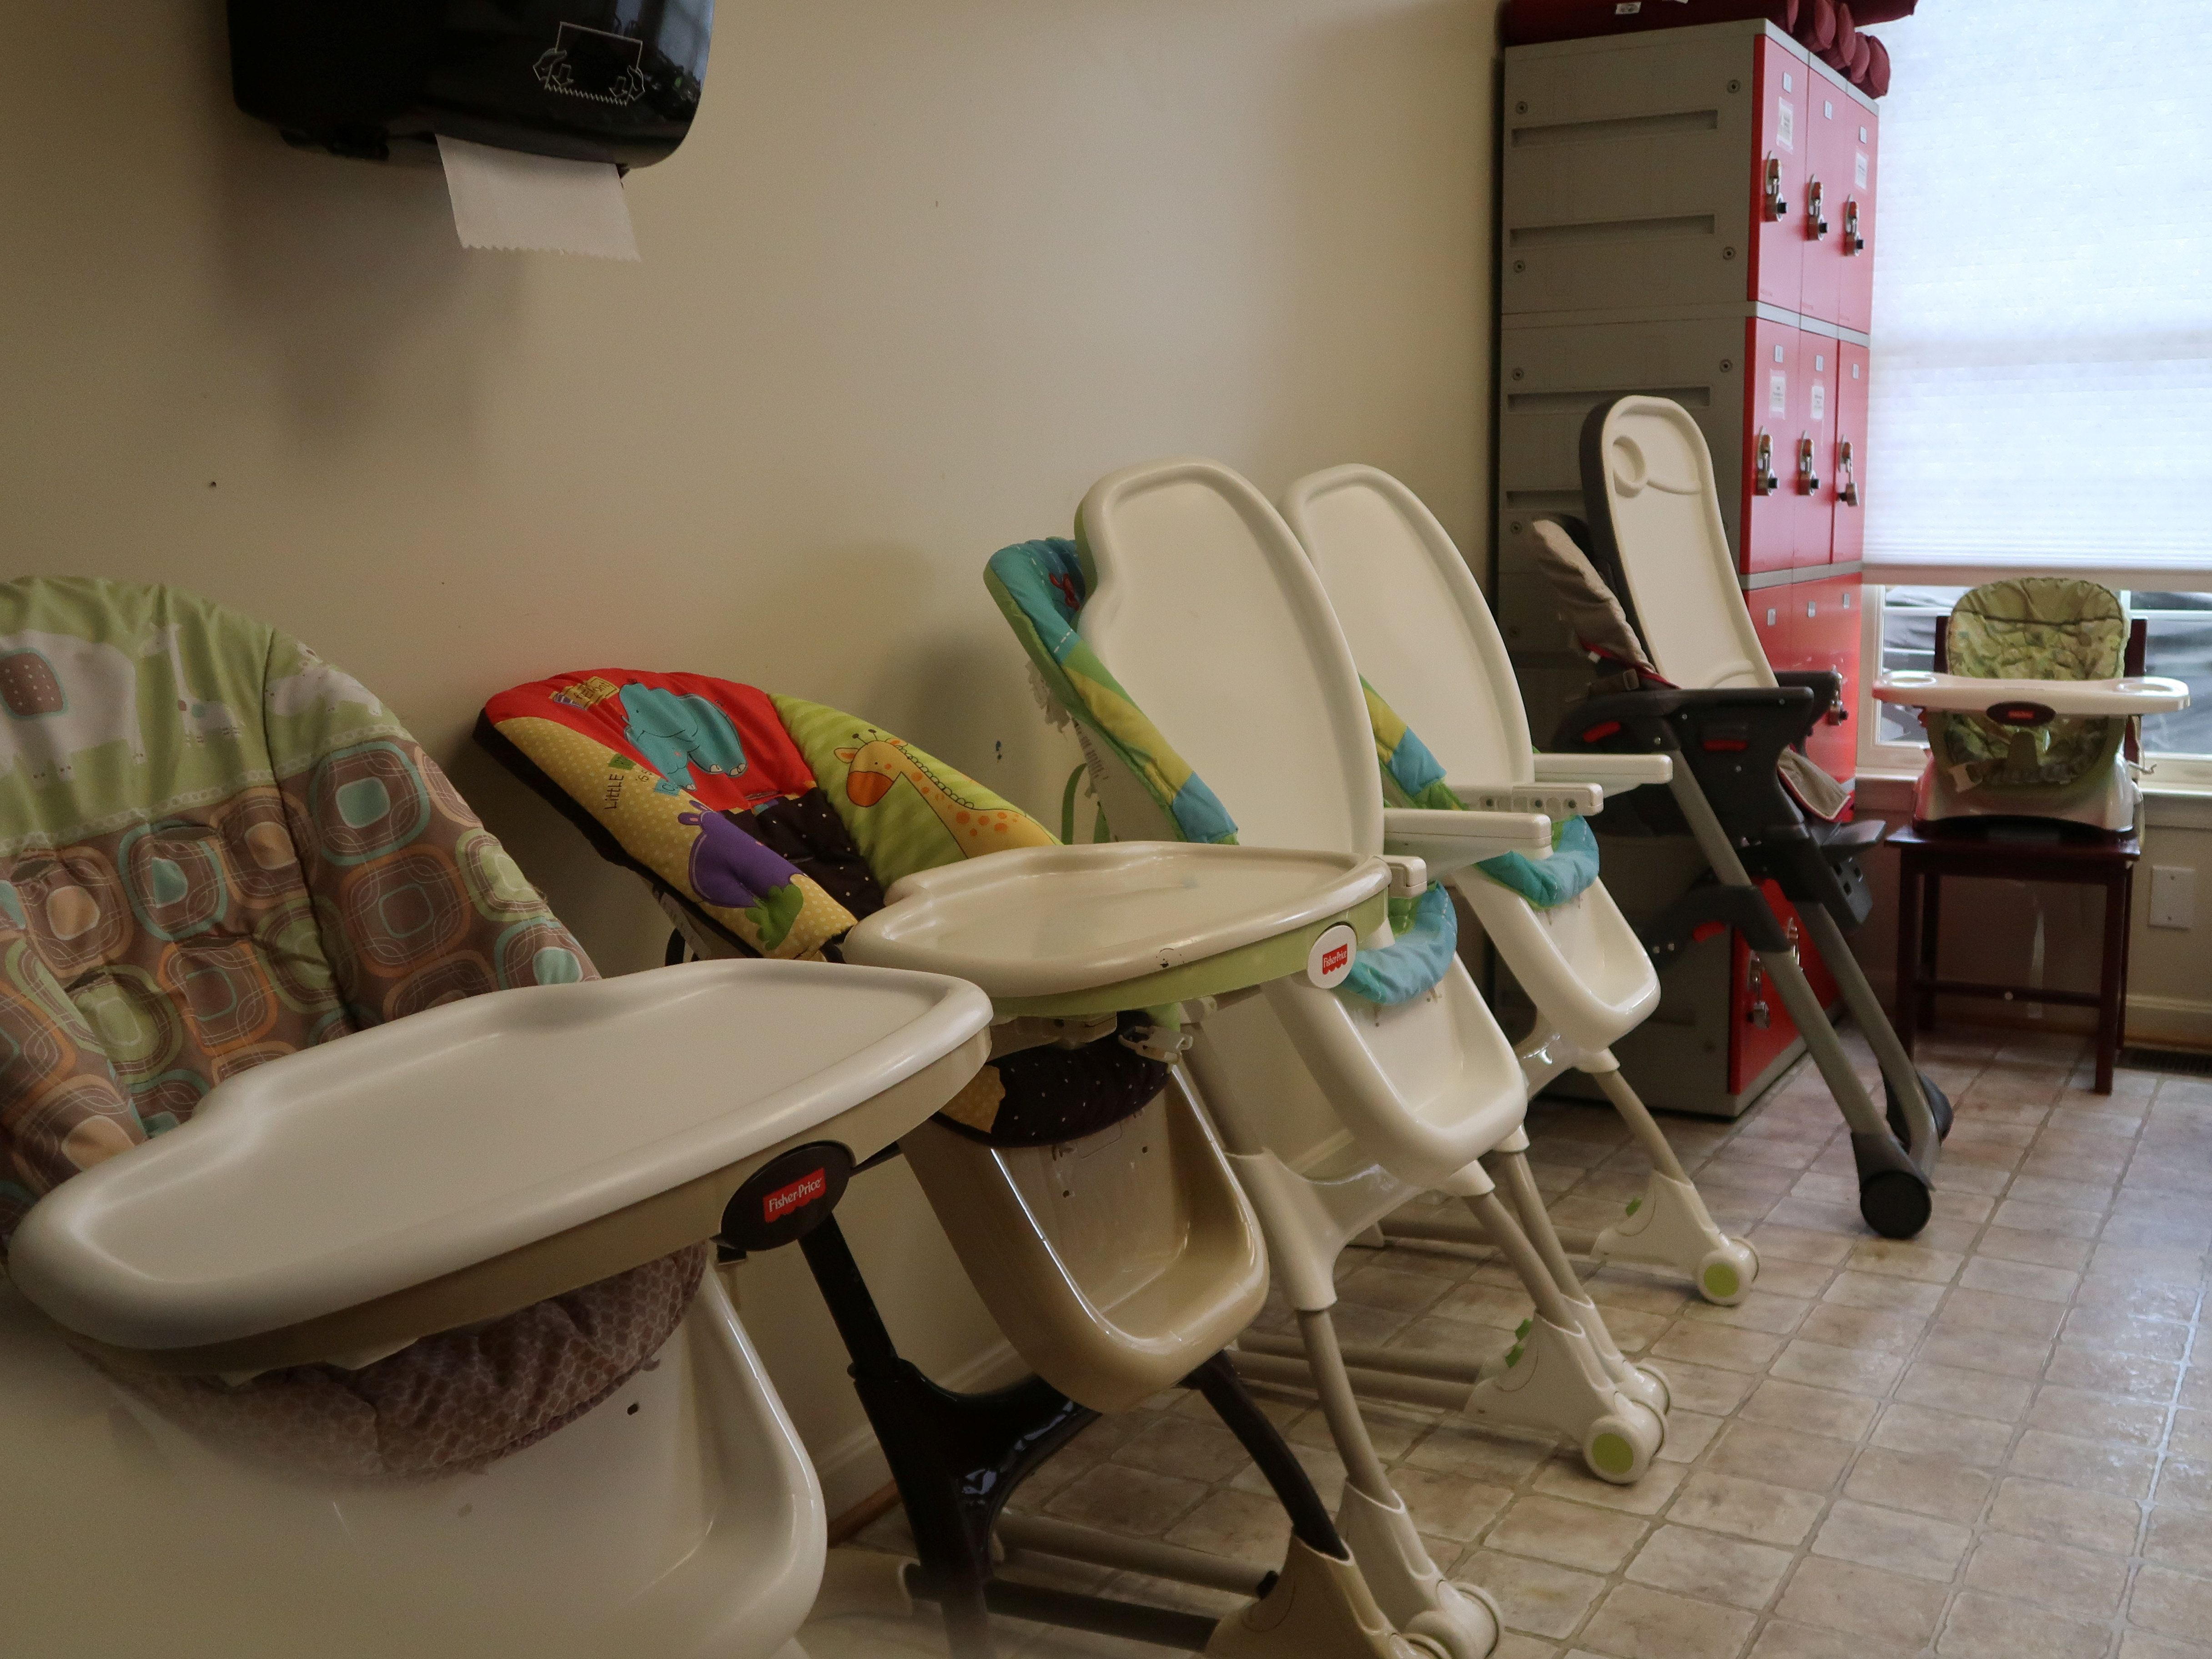 Baby and toddler high chairs are seen at the Bristow facility, in this photo provided by the U.S. Department of Health and Hu